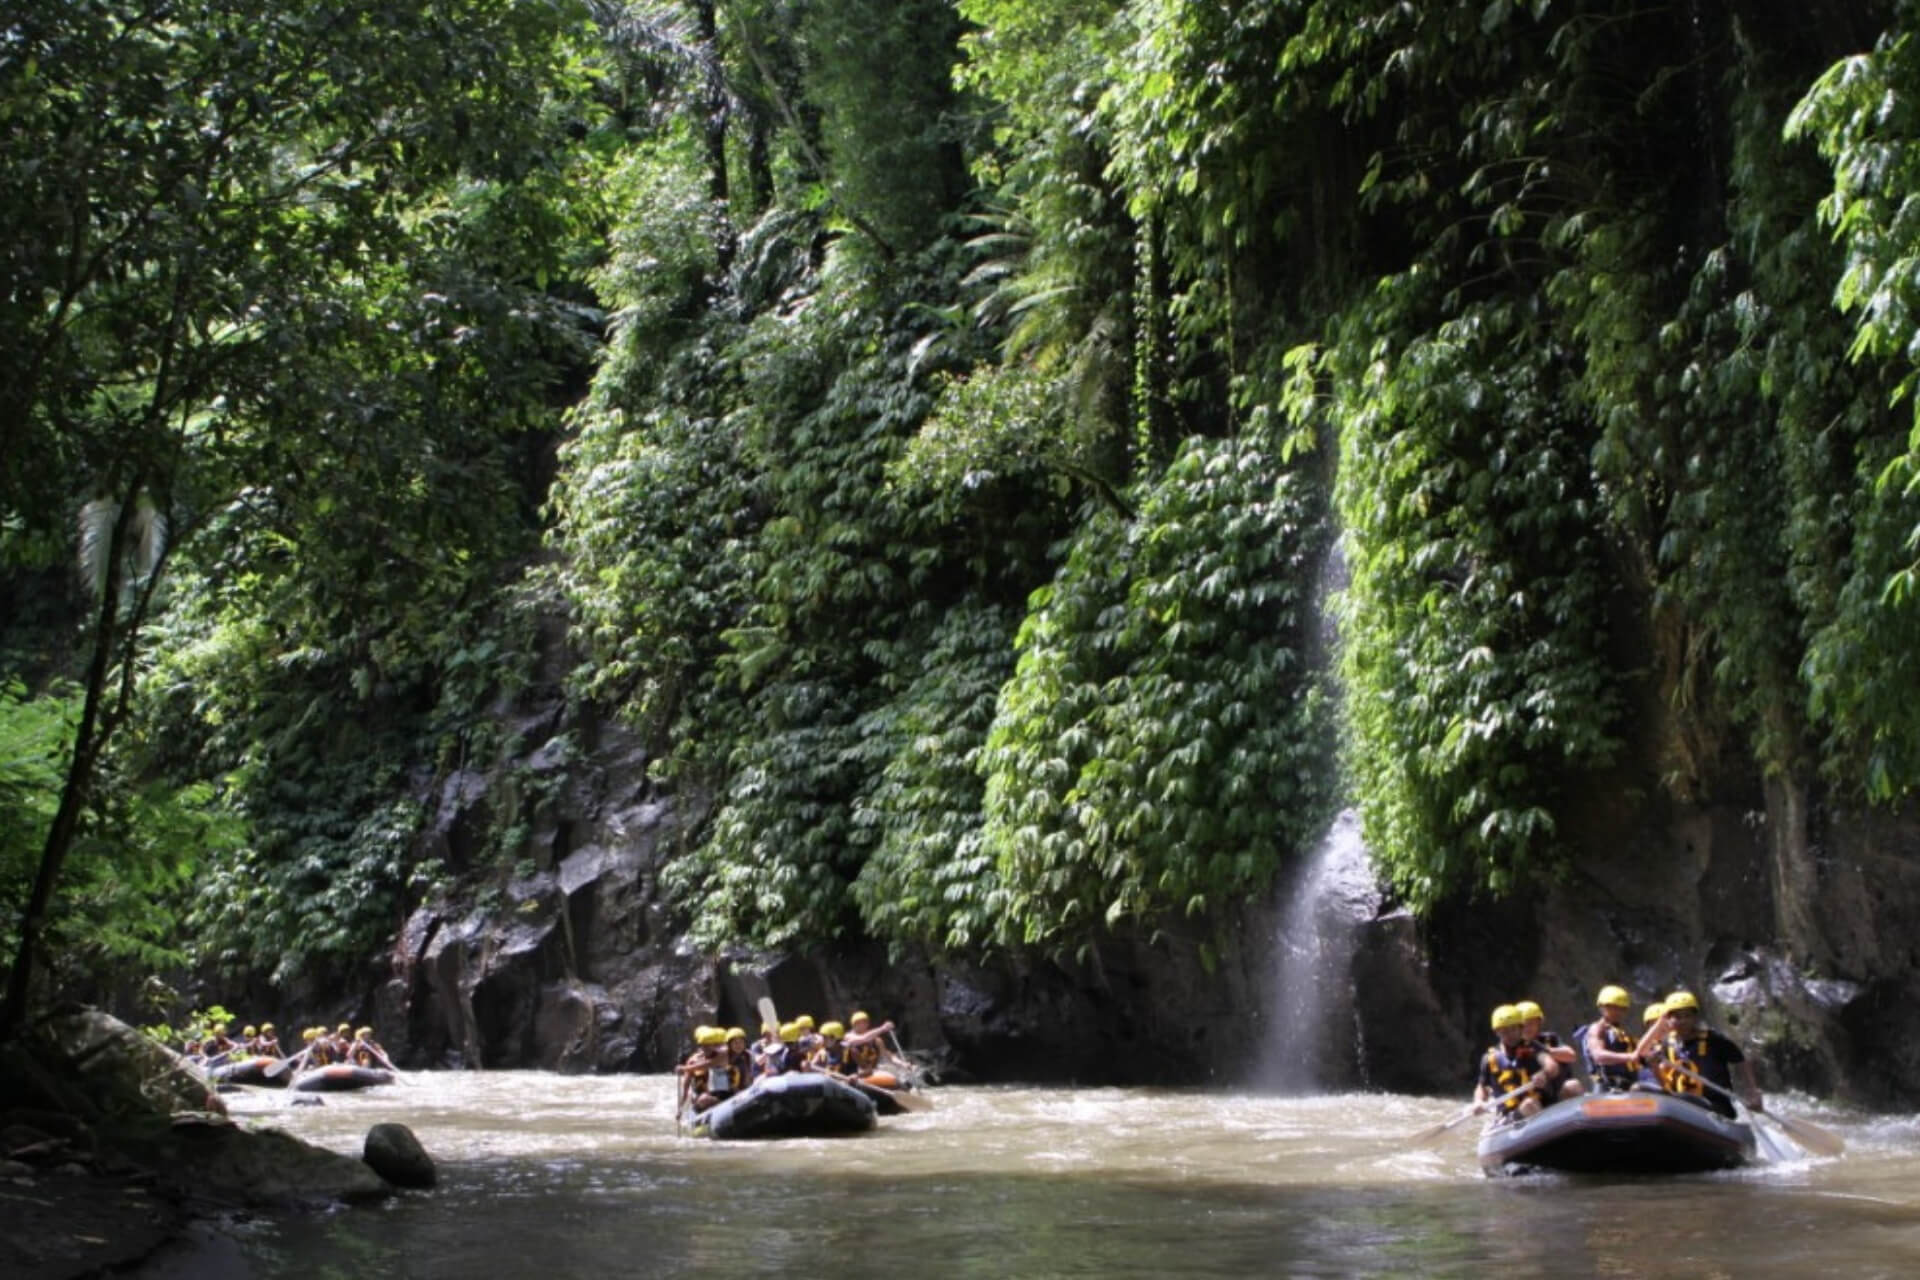 Bali Rafting Adventure forest scenery and pristine wildlife